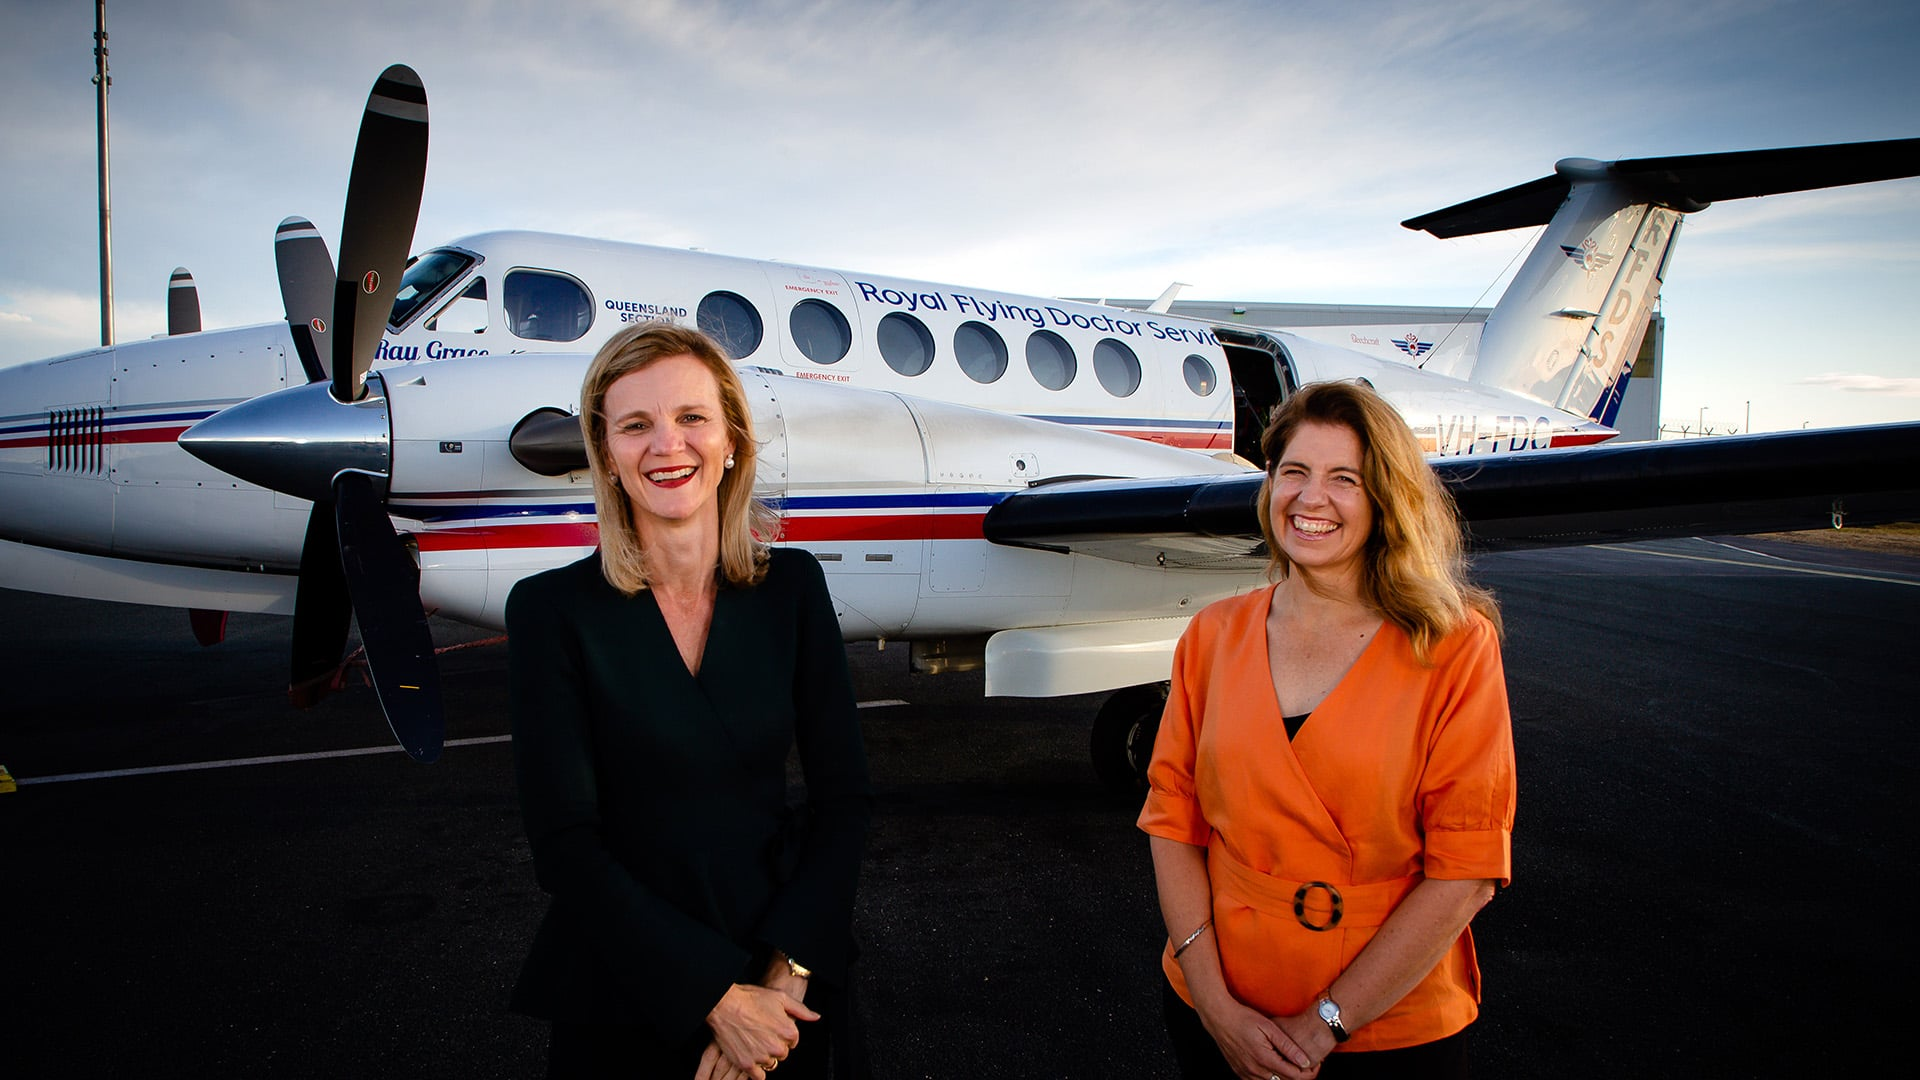 RFDS Qld CEO Meredith Staib and Rio Tinto Aluminium Pacific Operations MD Kellie Parker